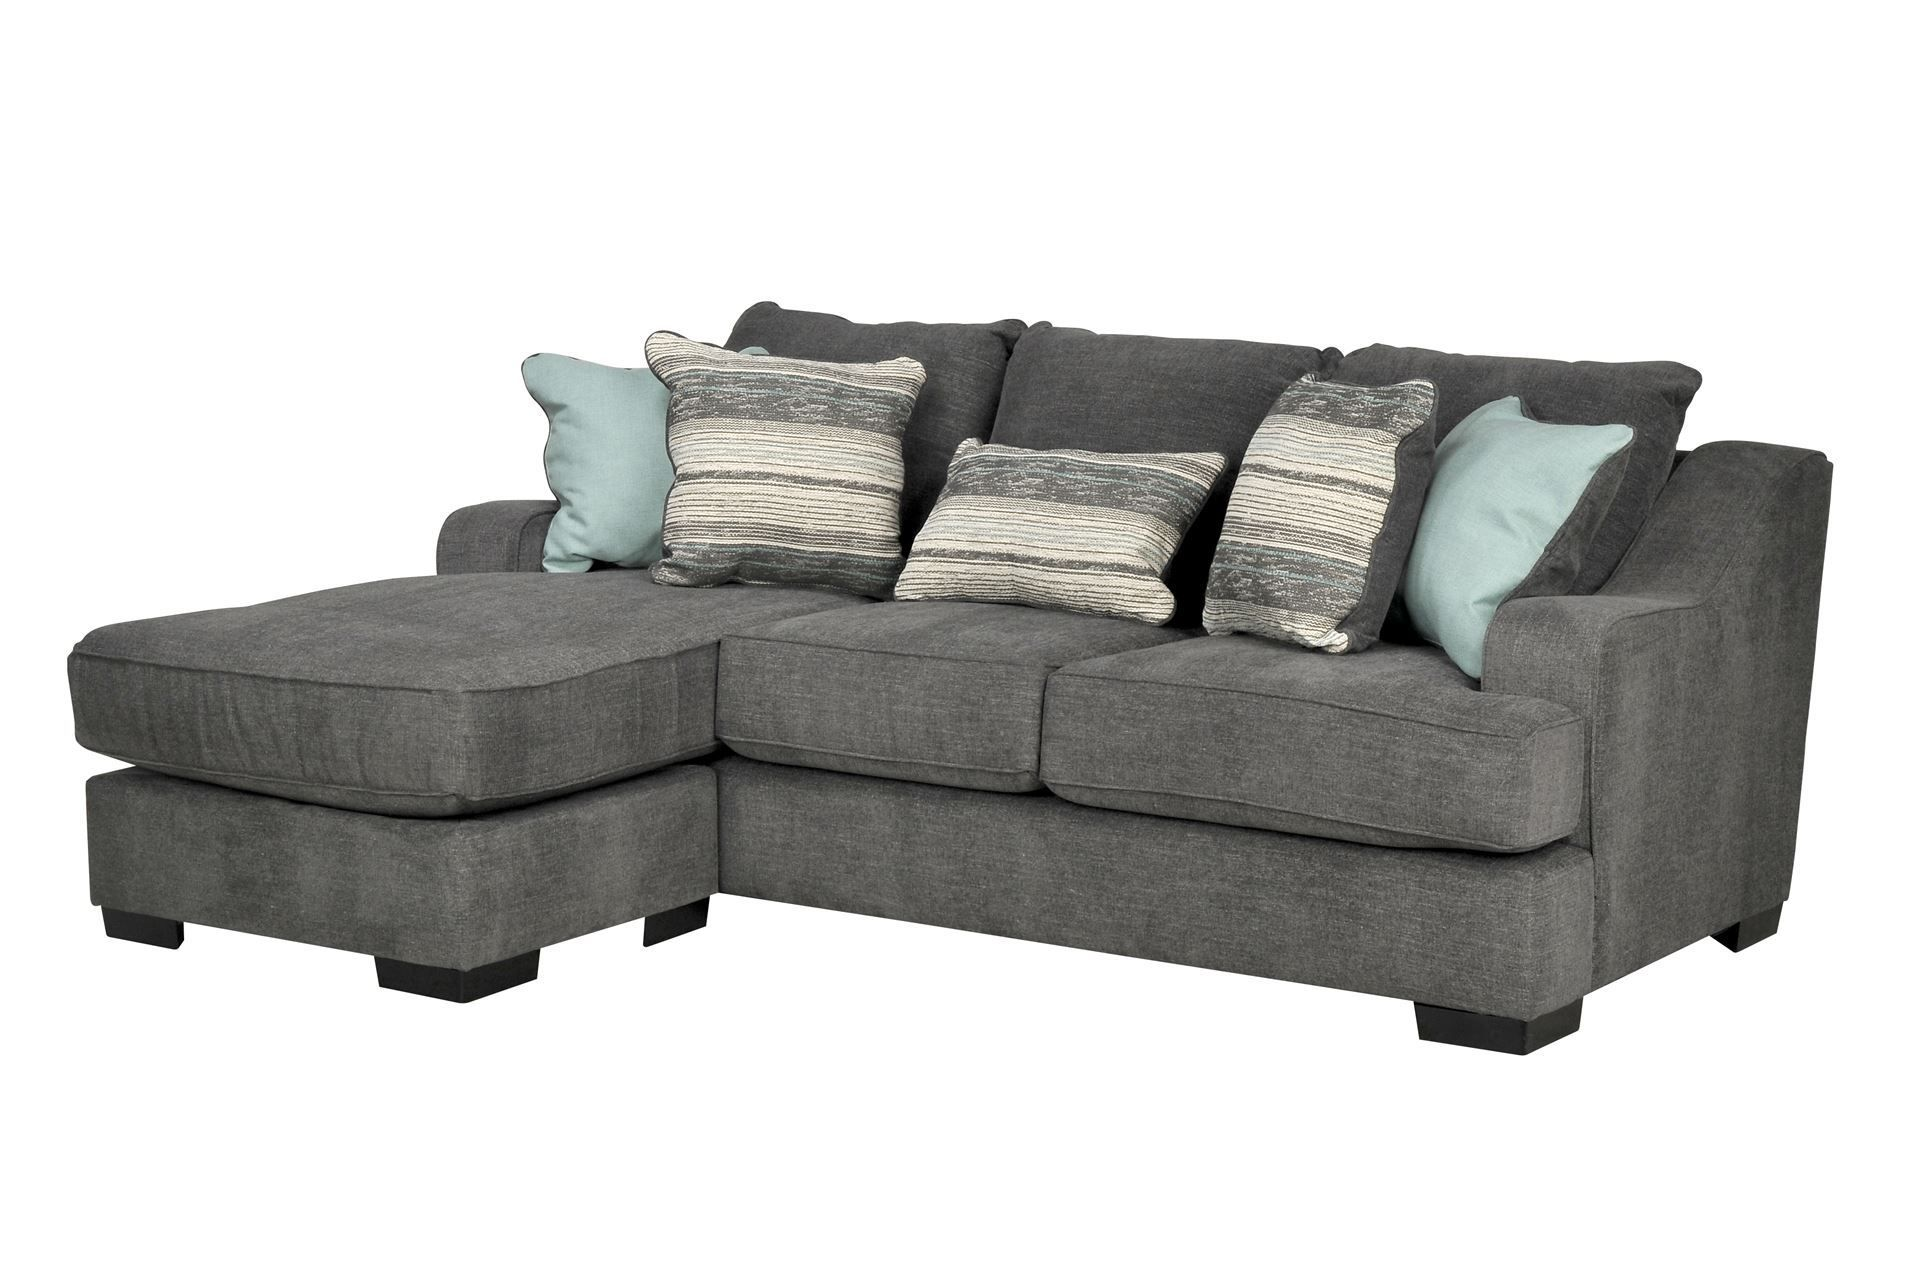 Gilbert sofa chaise for Ashley chaise lounge sofa